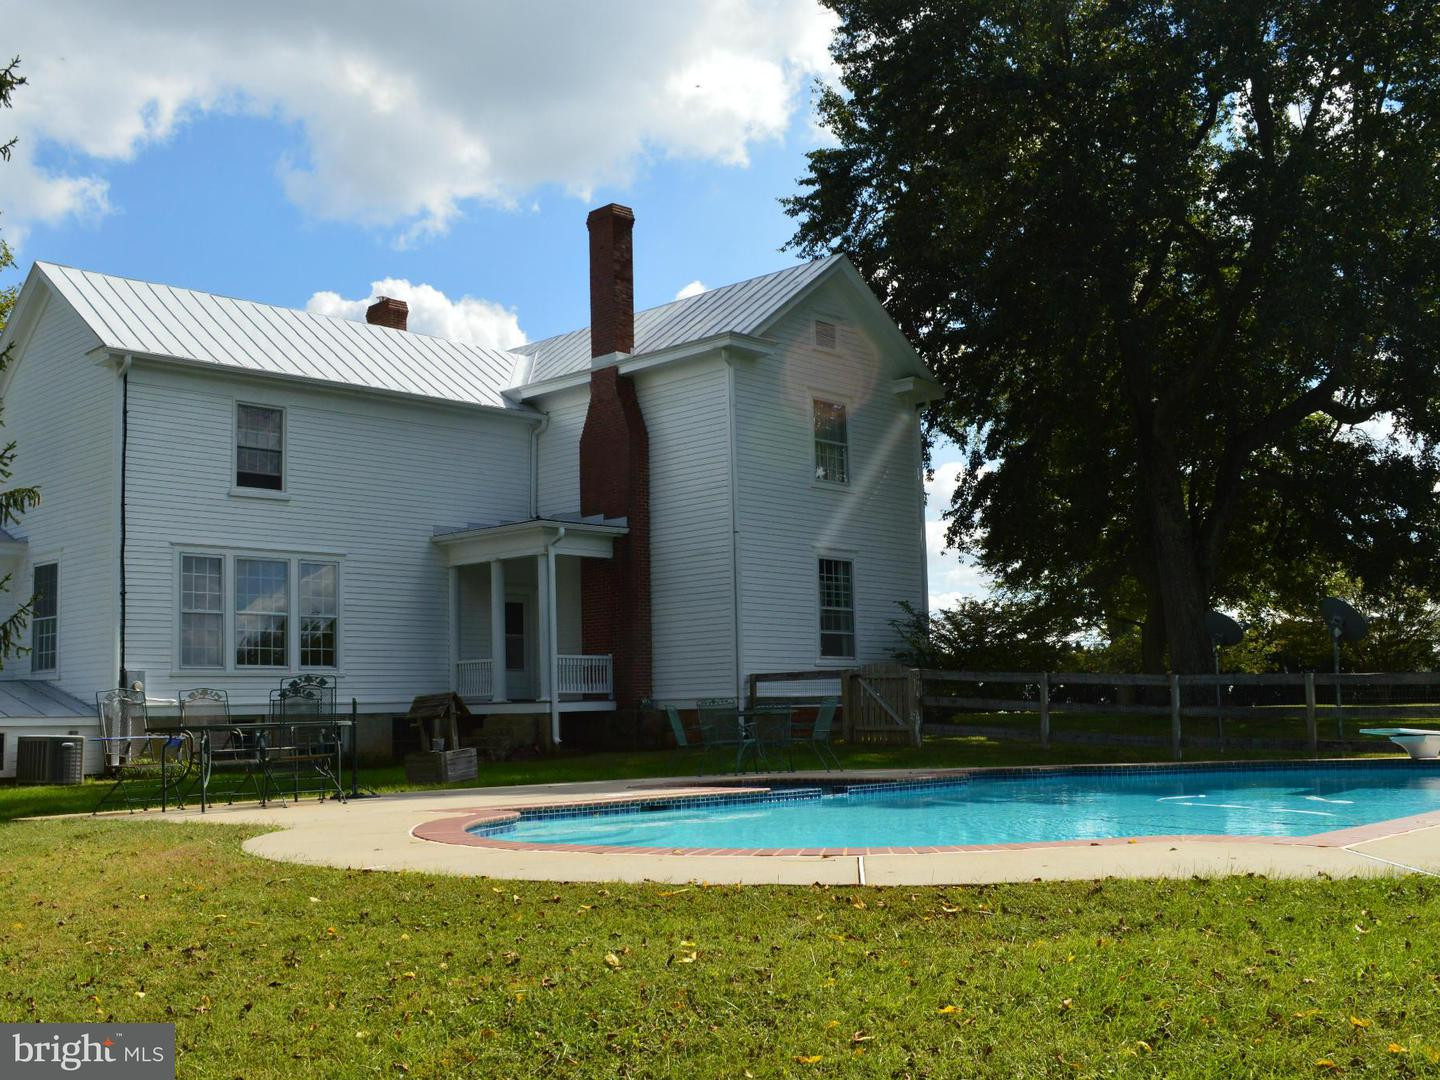 Additional photo for property listing at 13406 Mt Zion Church Rd  Culpeper, Virginia 22701 United States